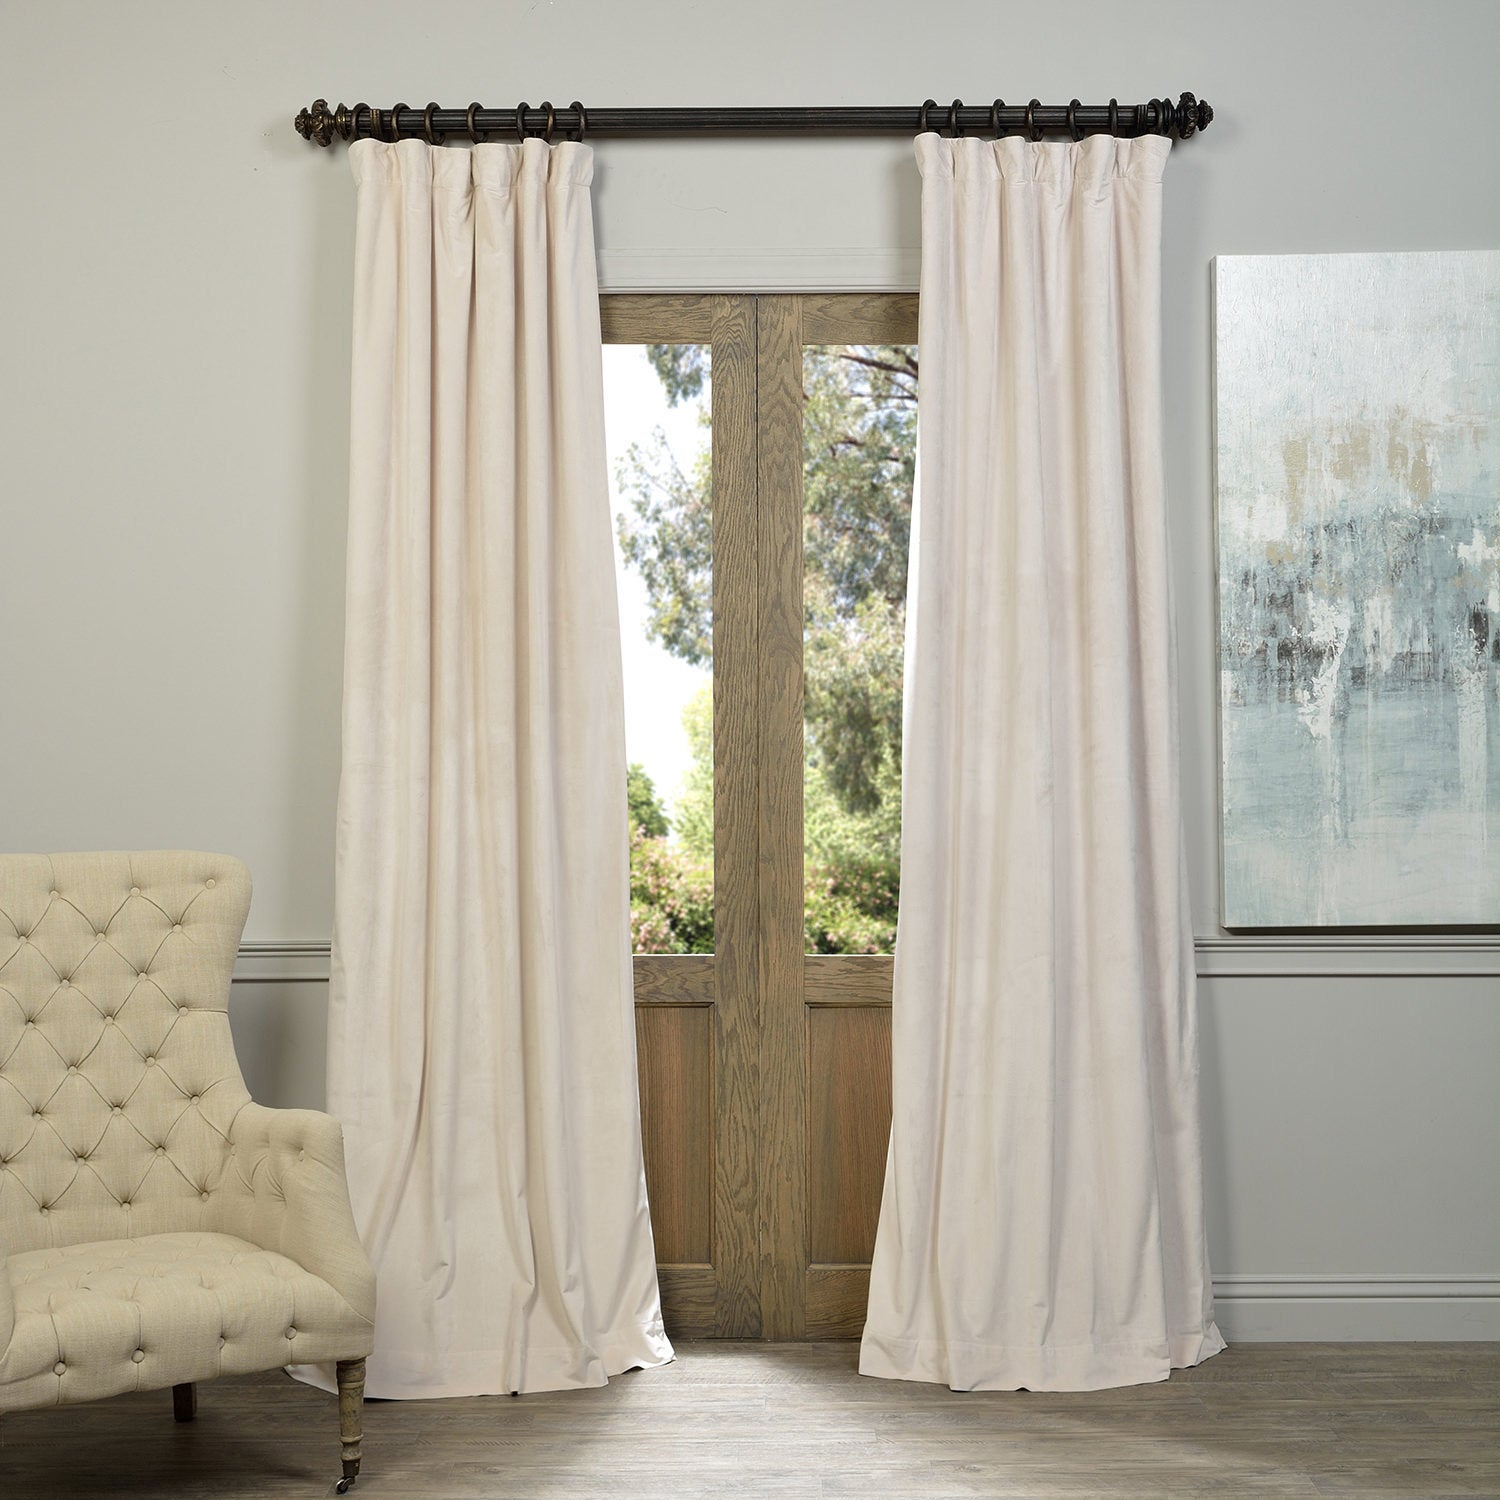 ivory hover velvet pocket signature panels curtains sin vpch drapes panel pole zoom wide half productdetail htm to curtain price blackout single double